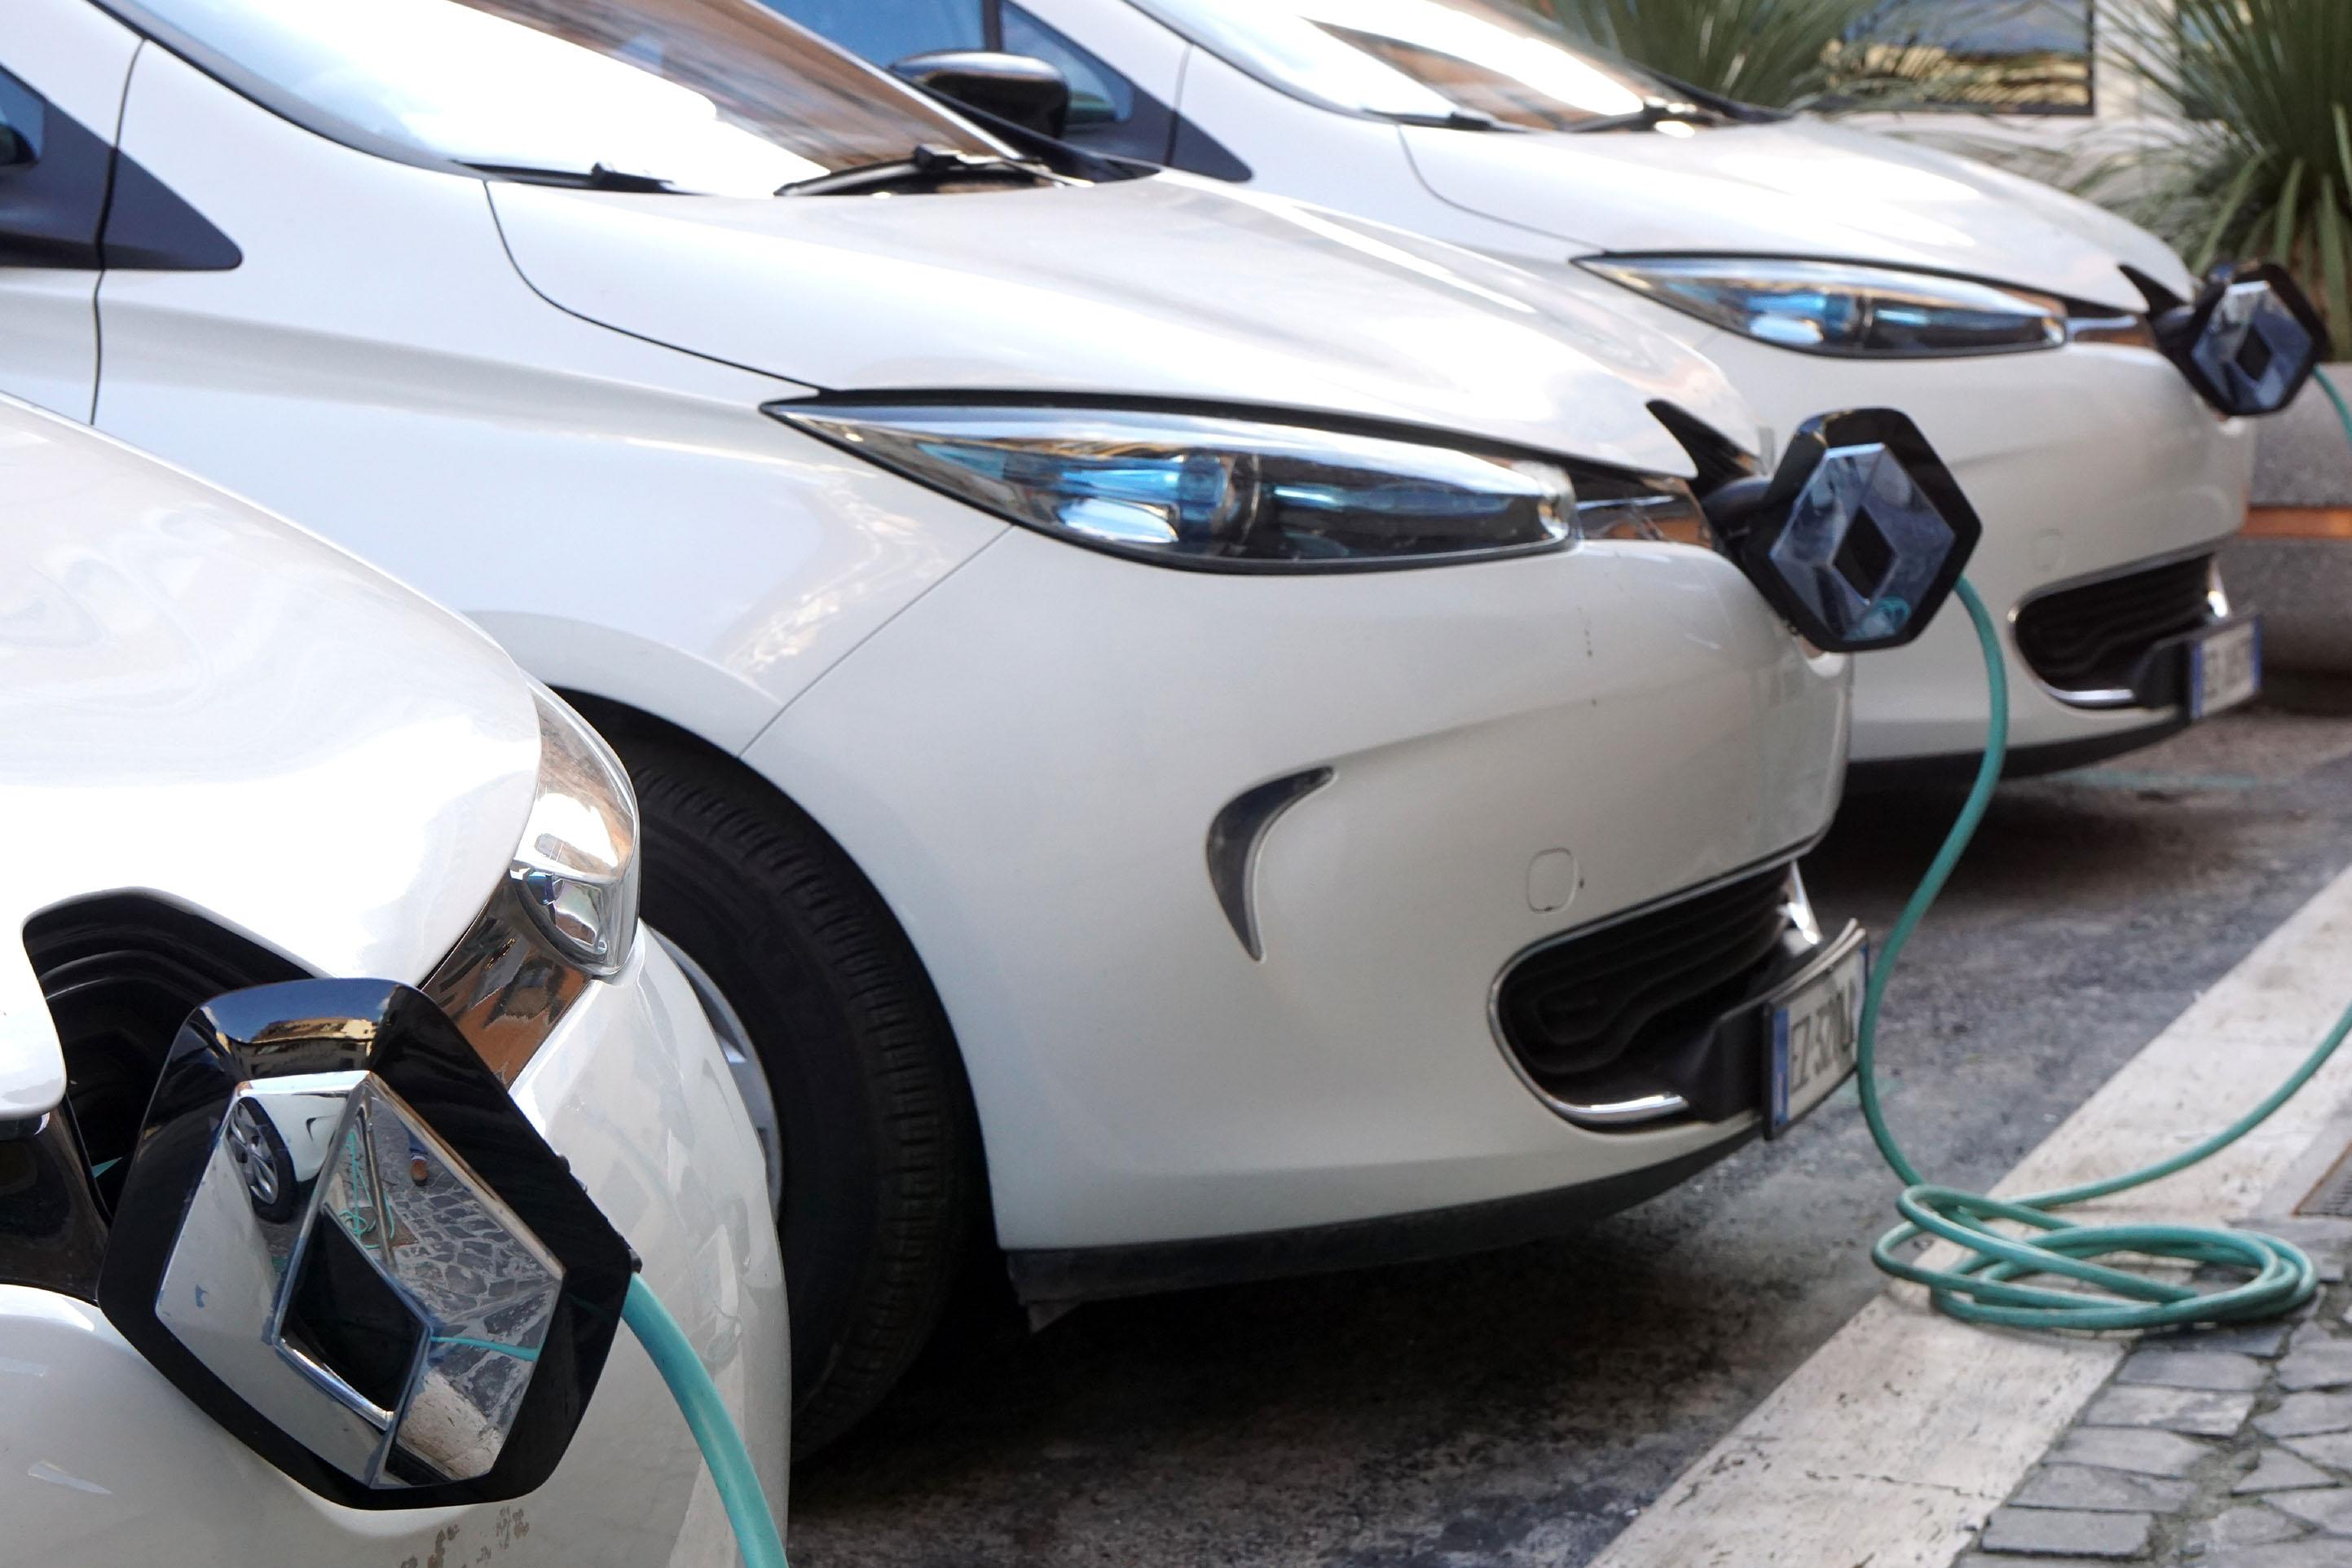 Germany plans one million electric car charging points by 2030